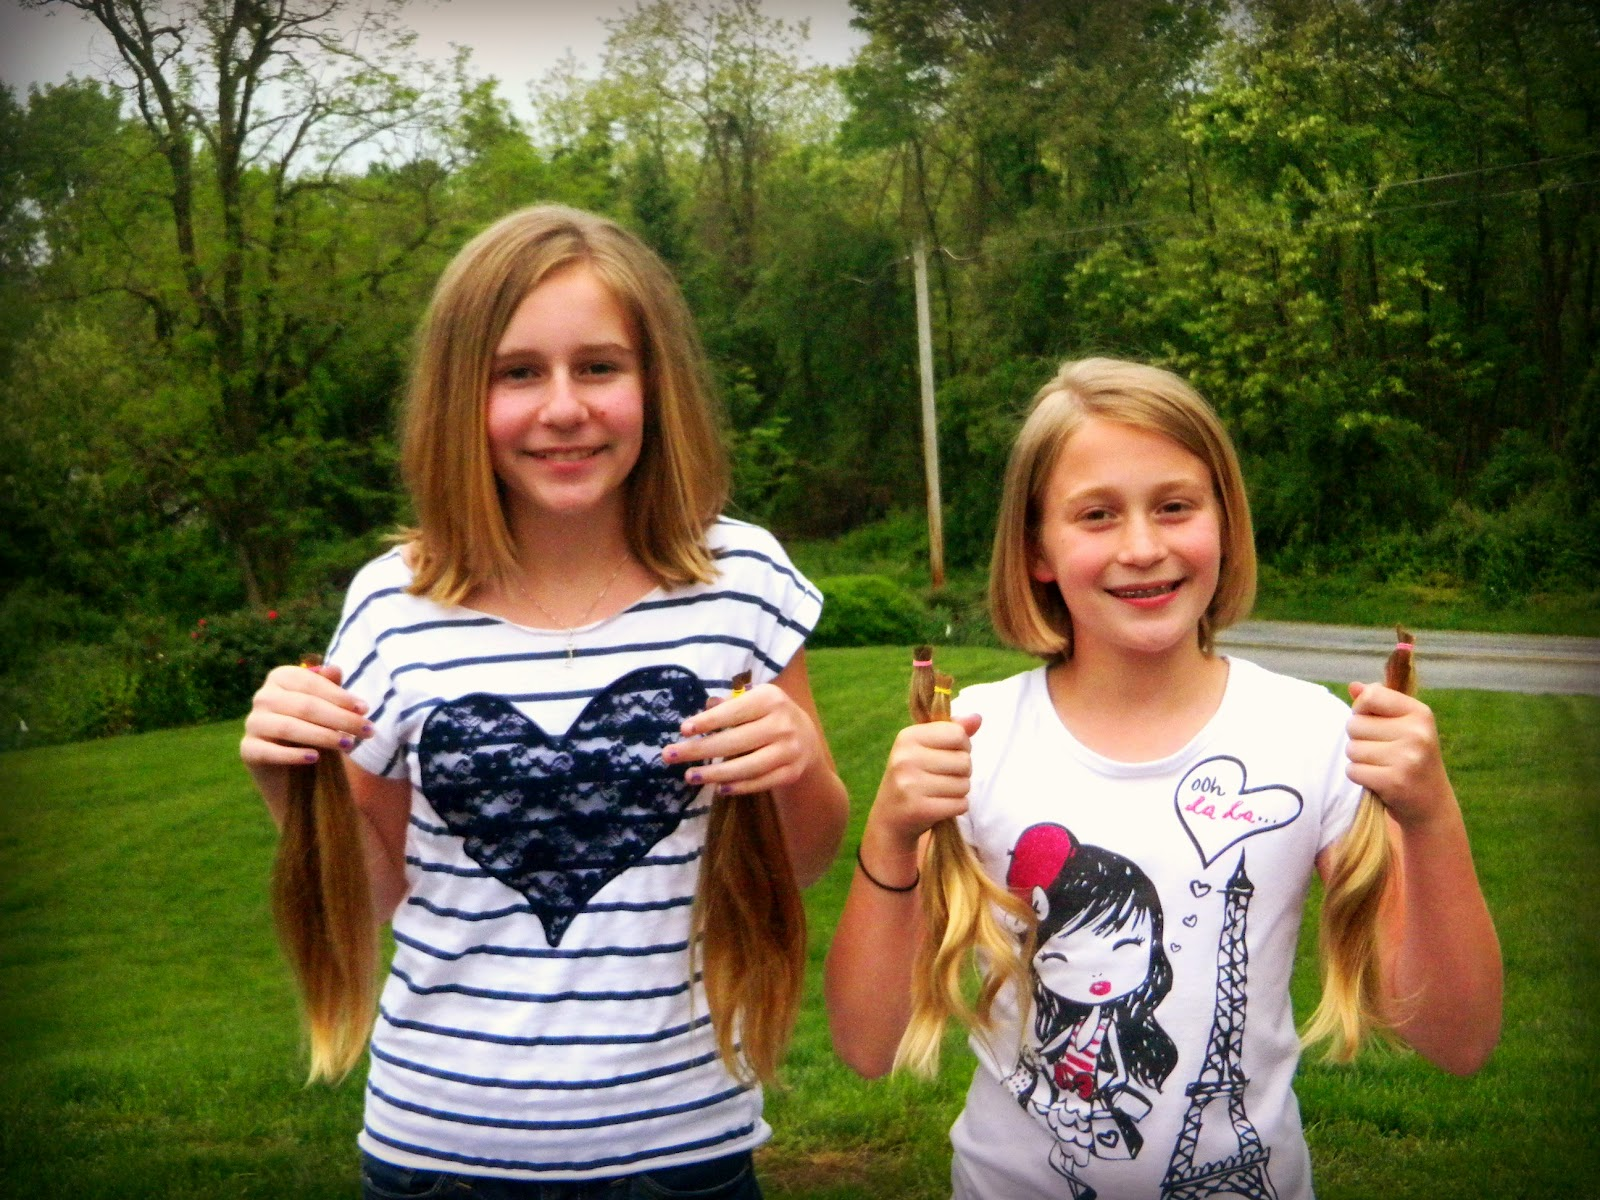 8 ponytails is almost enough hair to make one wig for a cancer patient!